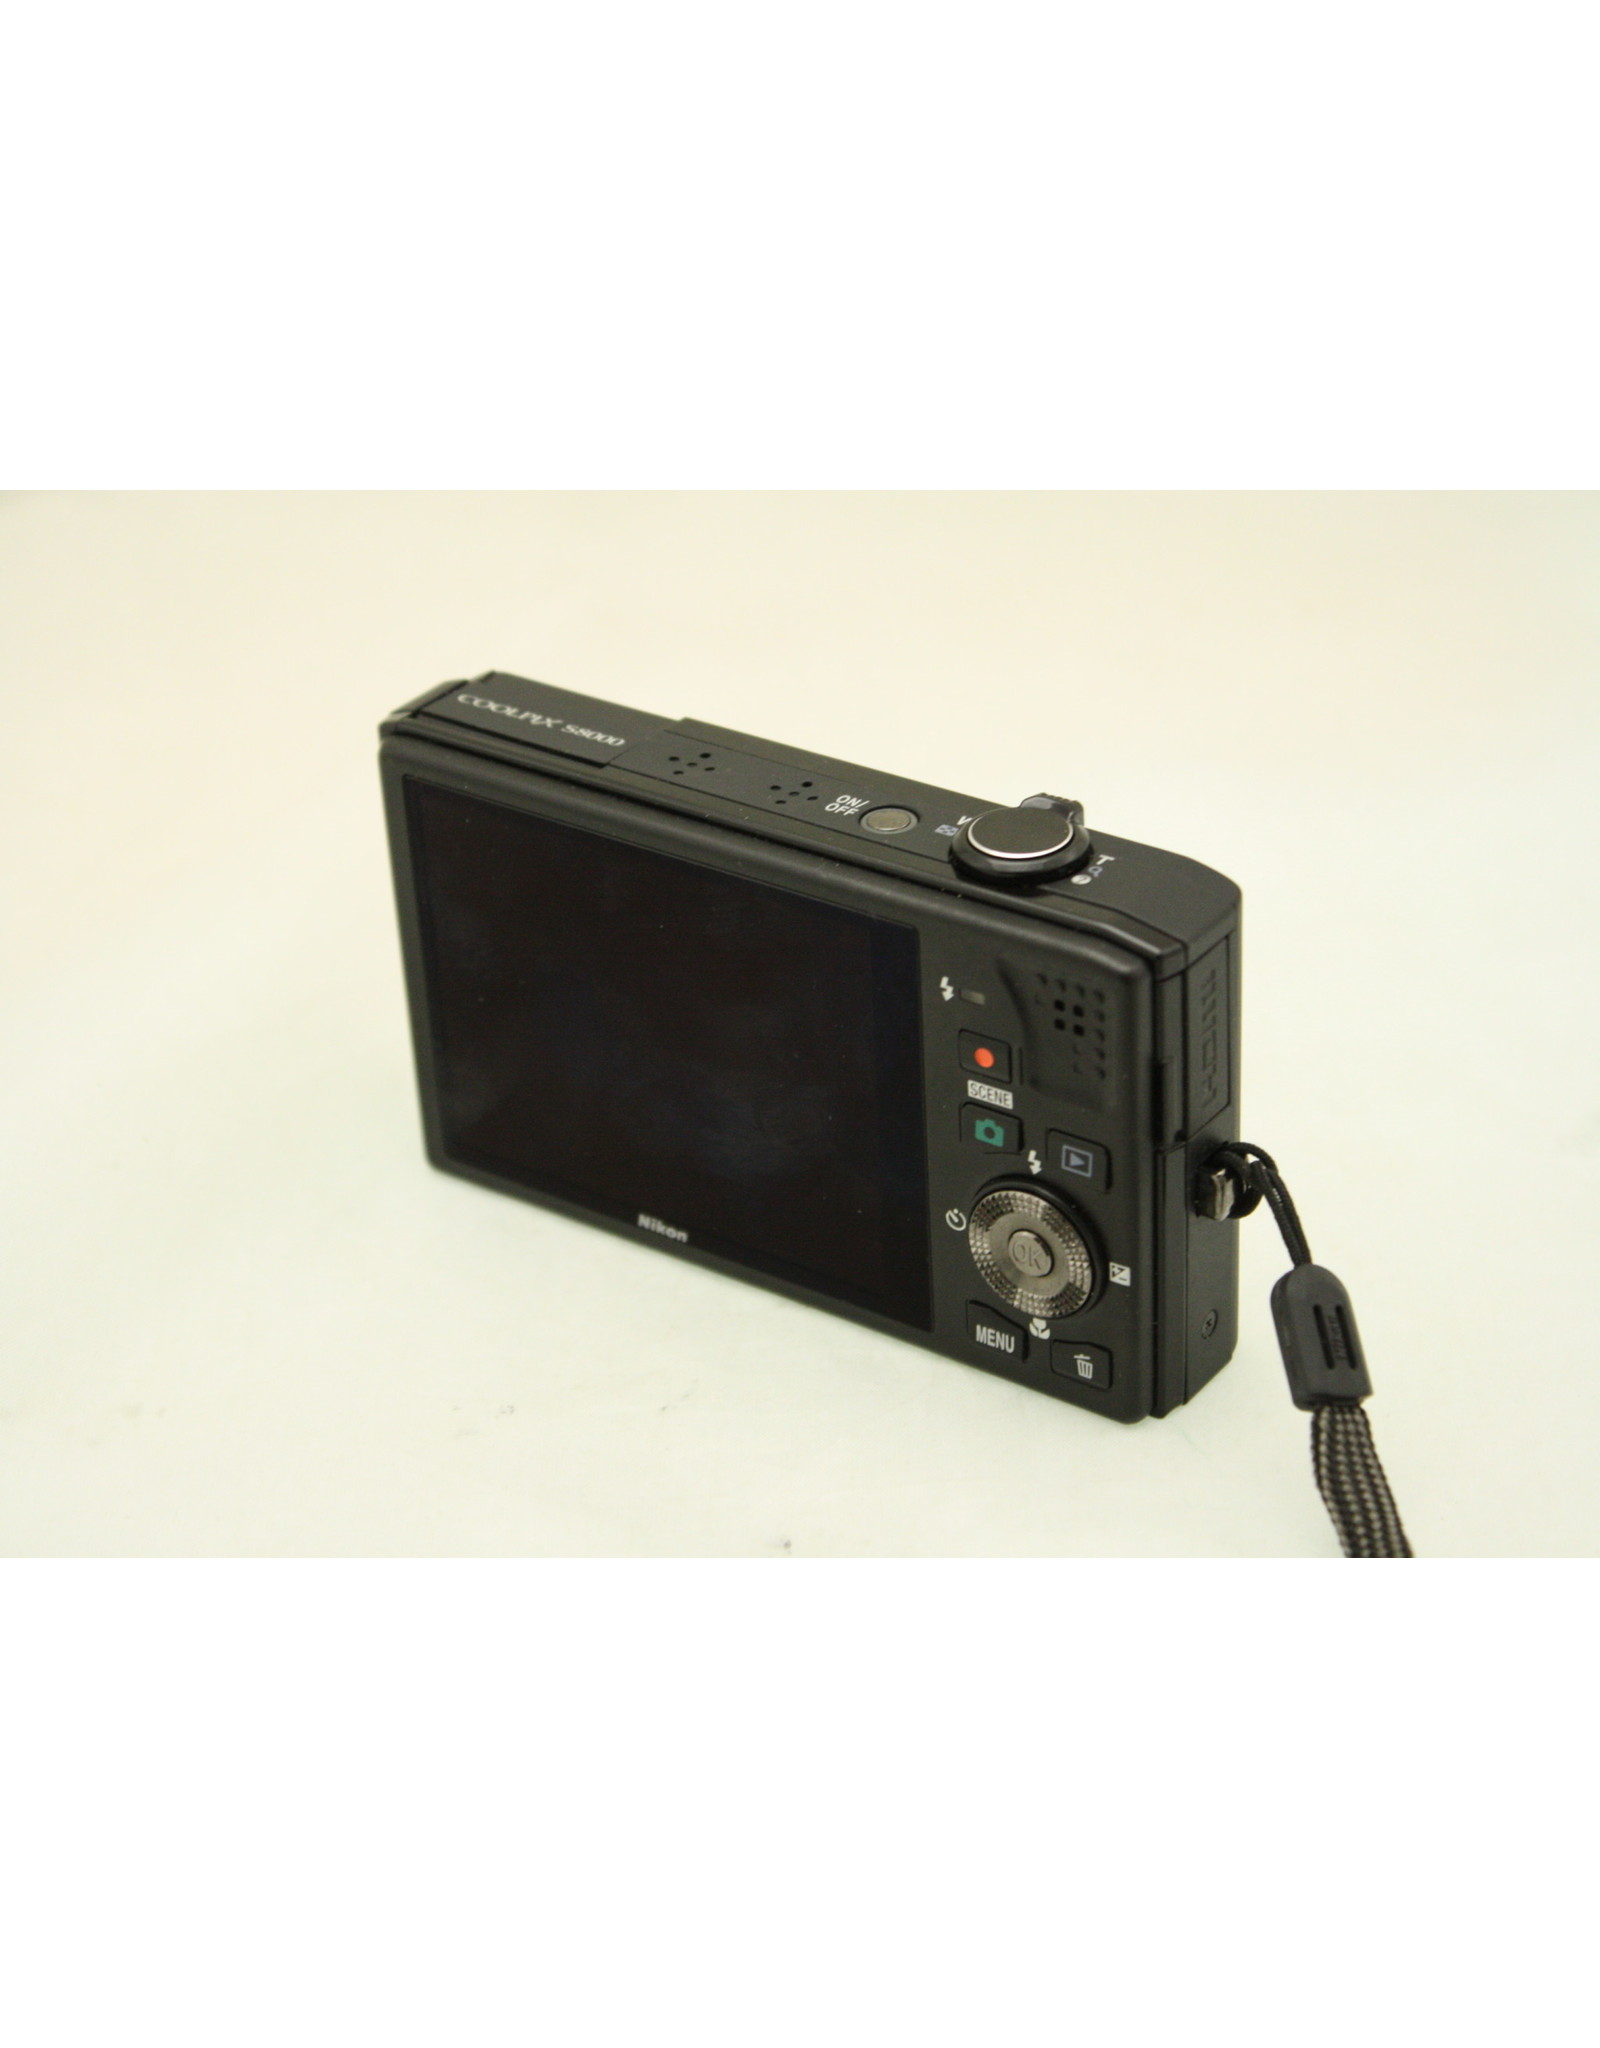 """Nikon COOLPIX S8000 14.2MP Black Digital Camera - 3"""" LCD battery charger (Flash not working -Sold AS-IS)"""